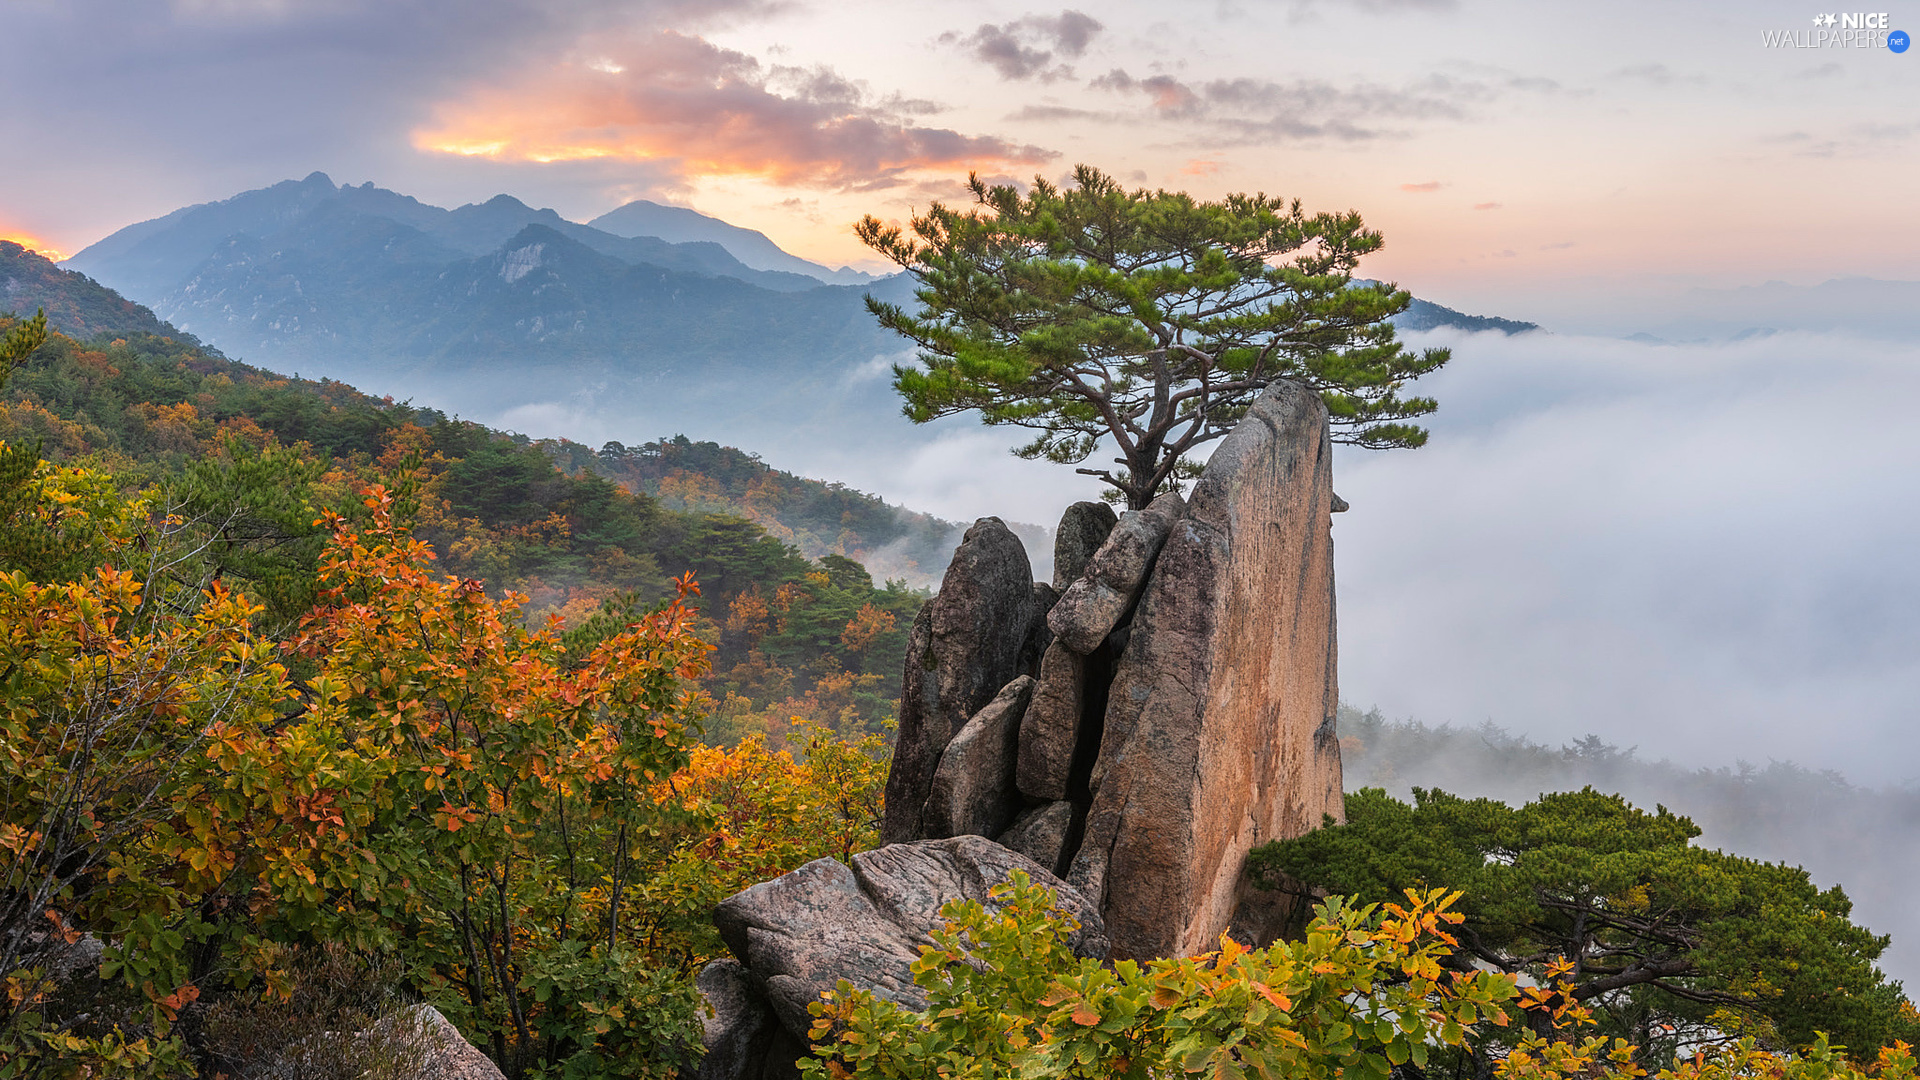 trees, Mountains, pine, Rocks, woods, autumn, Sky, clouds, Fog